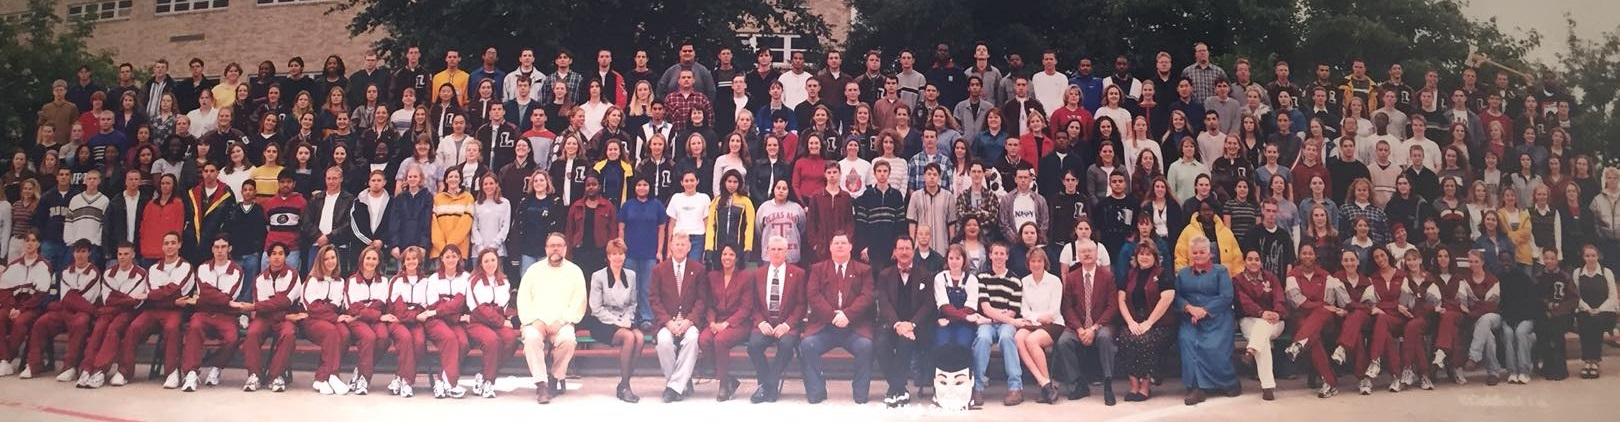 photo of the Lewisville High School class of 1999